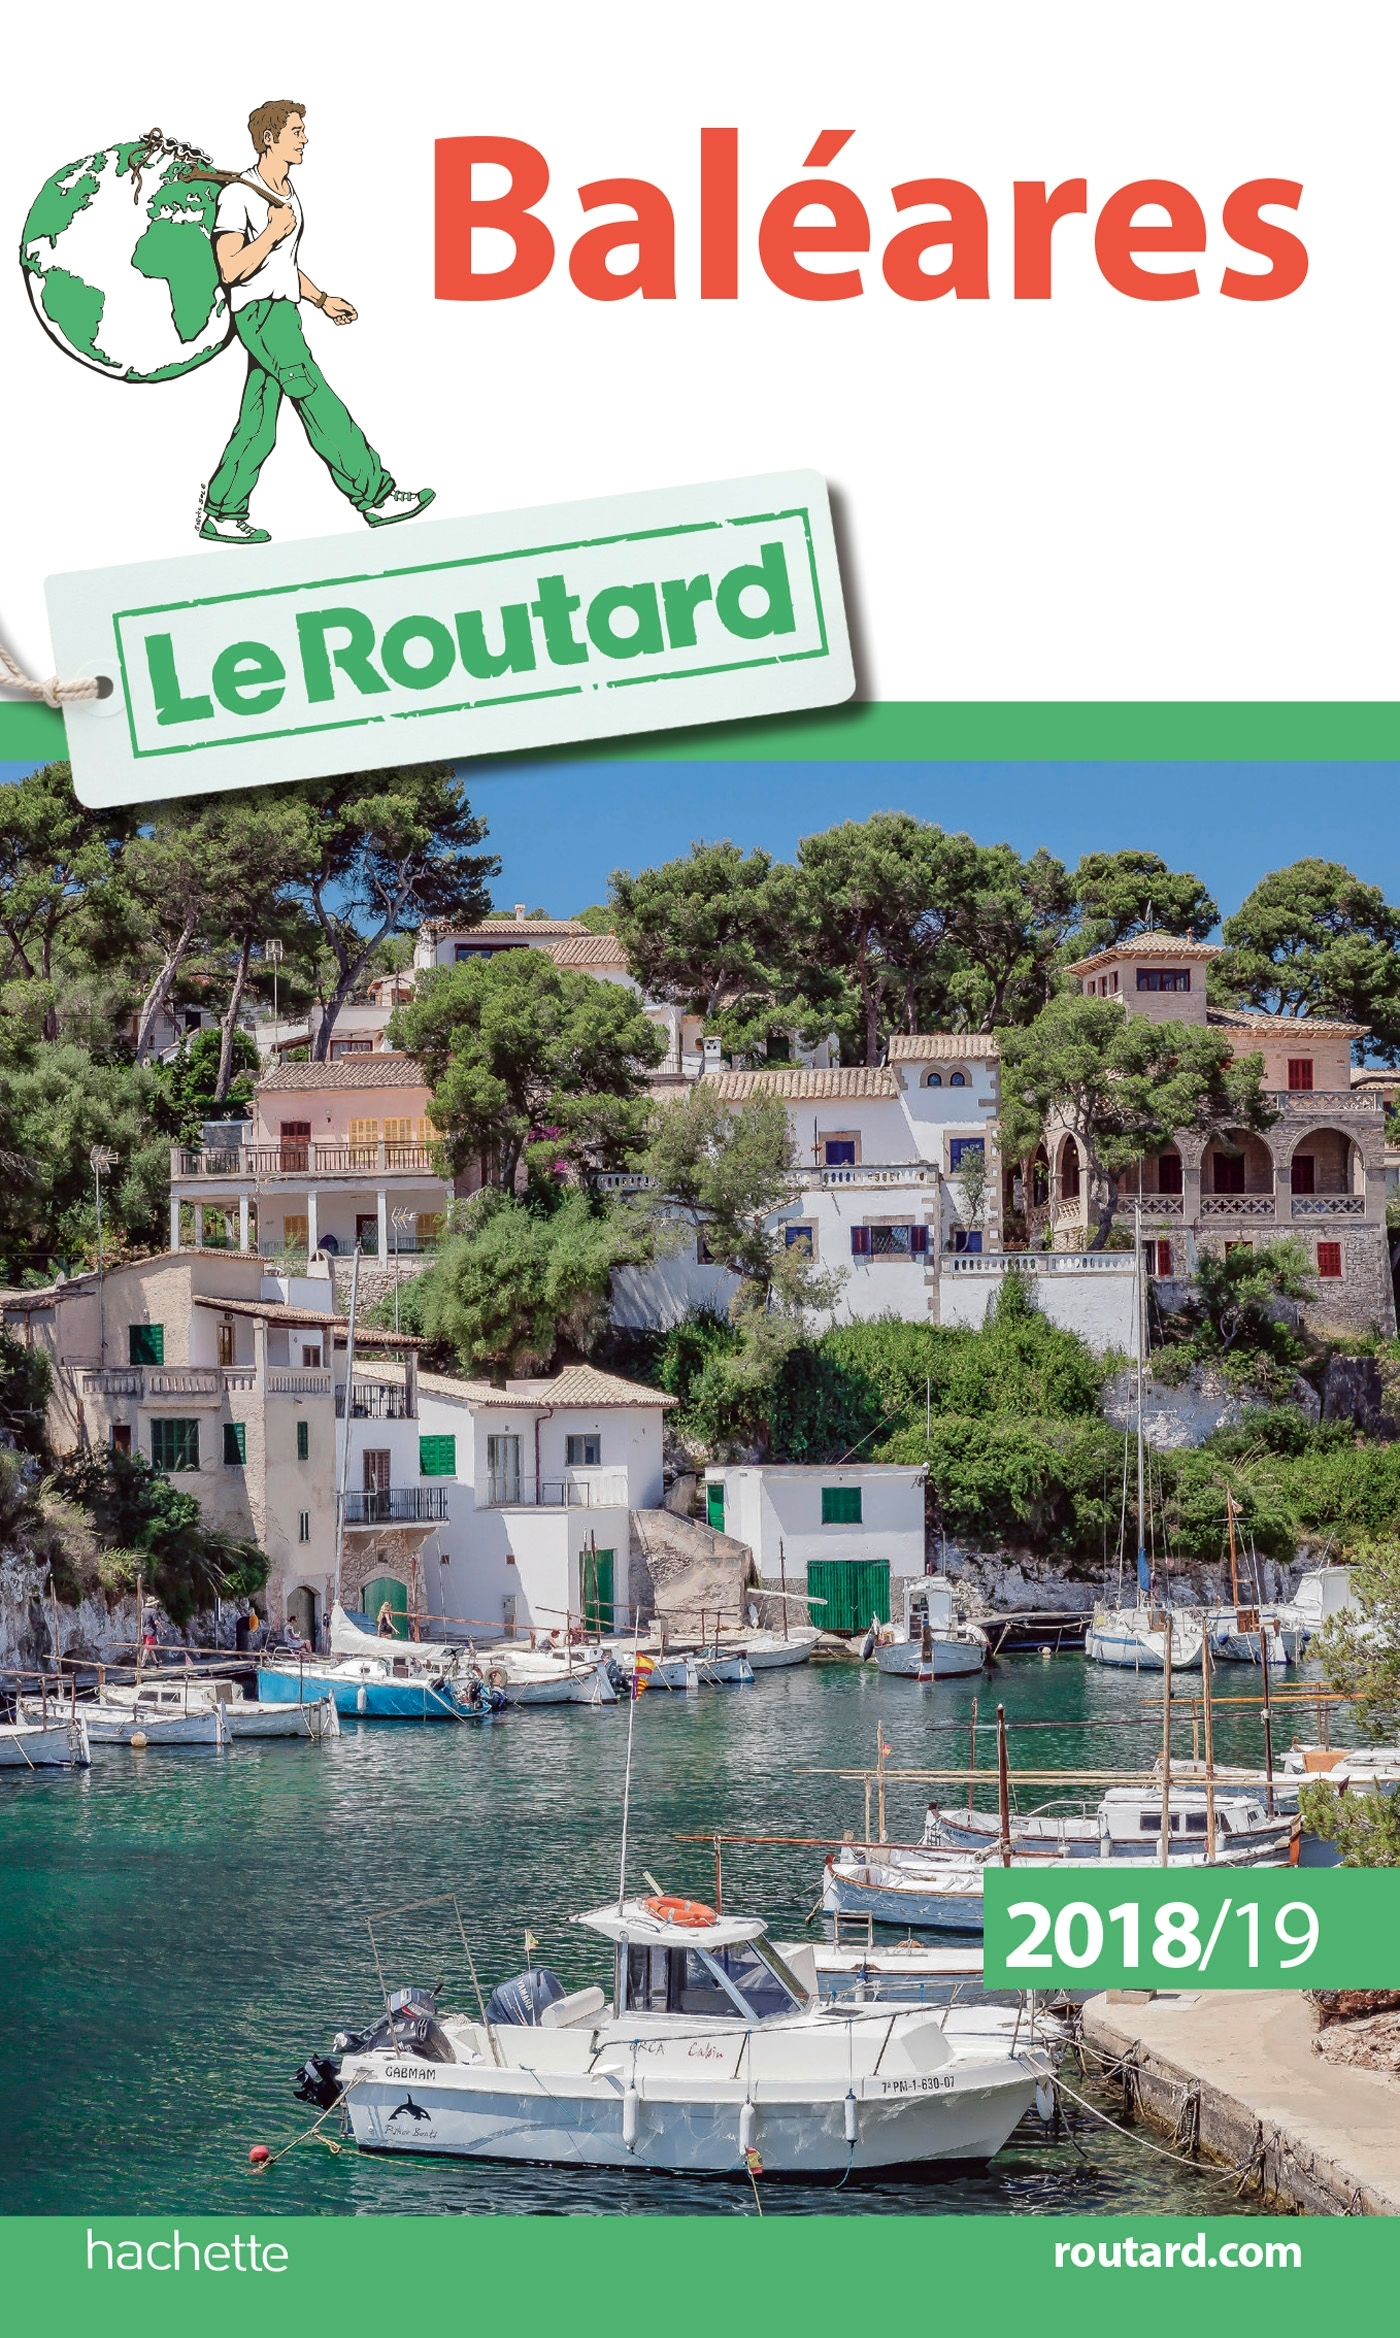 GUIDE DU ROUTARD BALEARES 2018/19